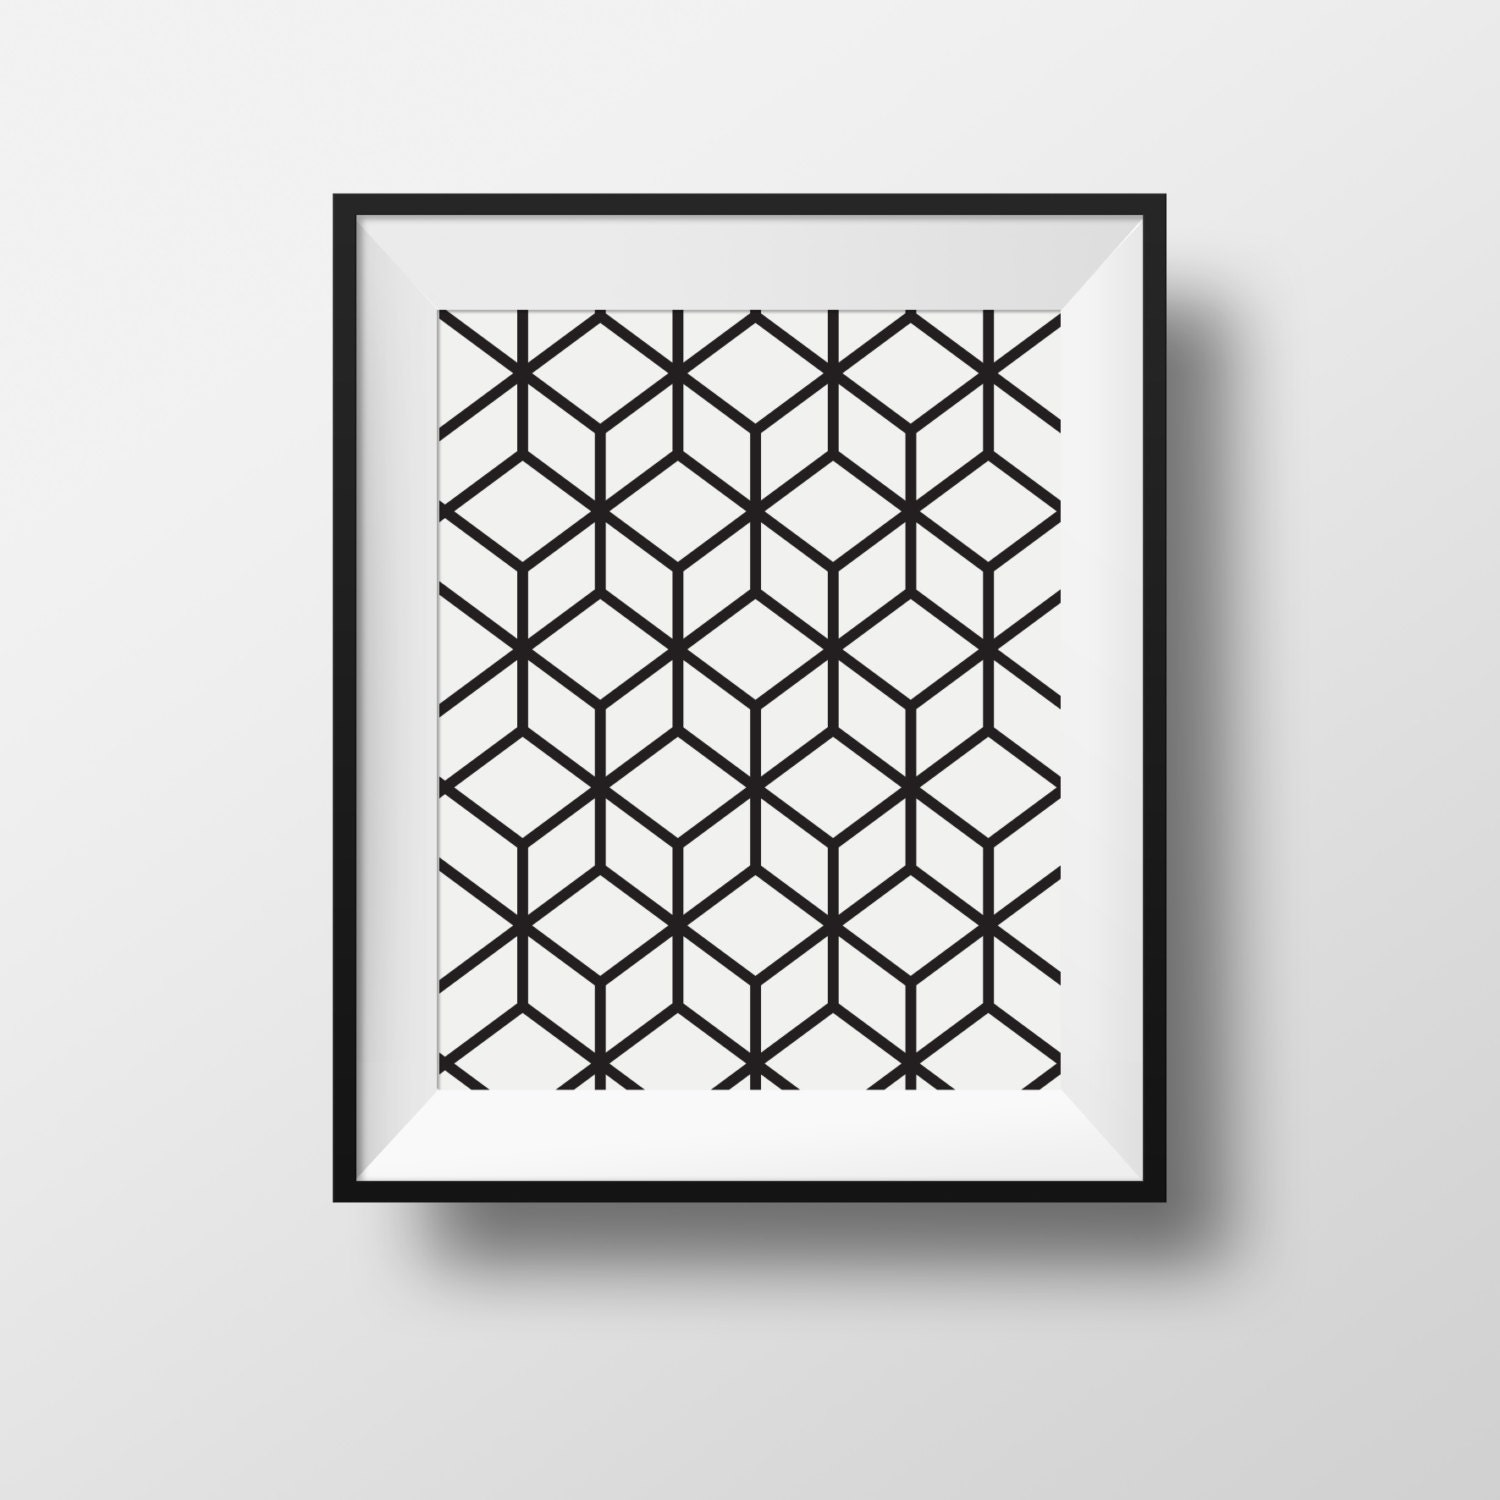 Wall art print cubic black and white frame ikea ribba. Ikea X Frame on virserum frame ikea, 16x20 frame ikea, fjallsta frame ikea, 24x36 frame ikea, rib frame ikea, 16x16 frame ikea, 24 x 24 frame ikea, 12x12 frame ikea, 20 x 28 frame ikea, 18x18 frame ikea, 13x19 frame ikea, 11x17 frame ikea, 7x9 frame ikea, brown frame ikea, 20 x 20 frame ikea, 20x28 frame ikea, black metal frame from ikea,